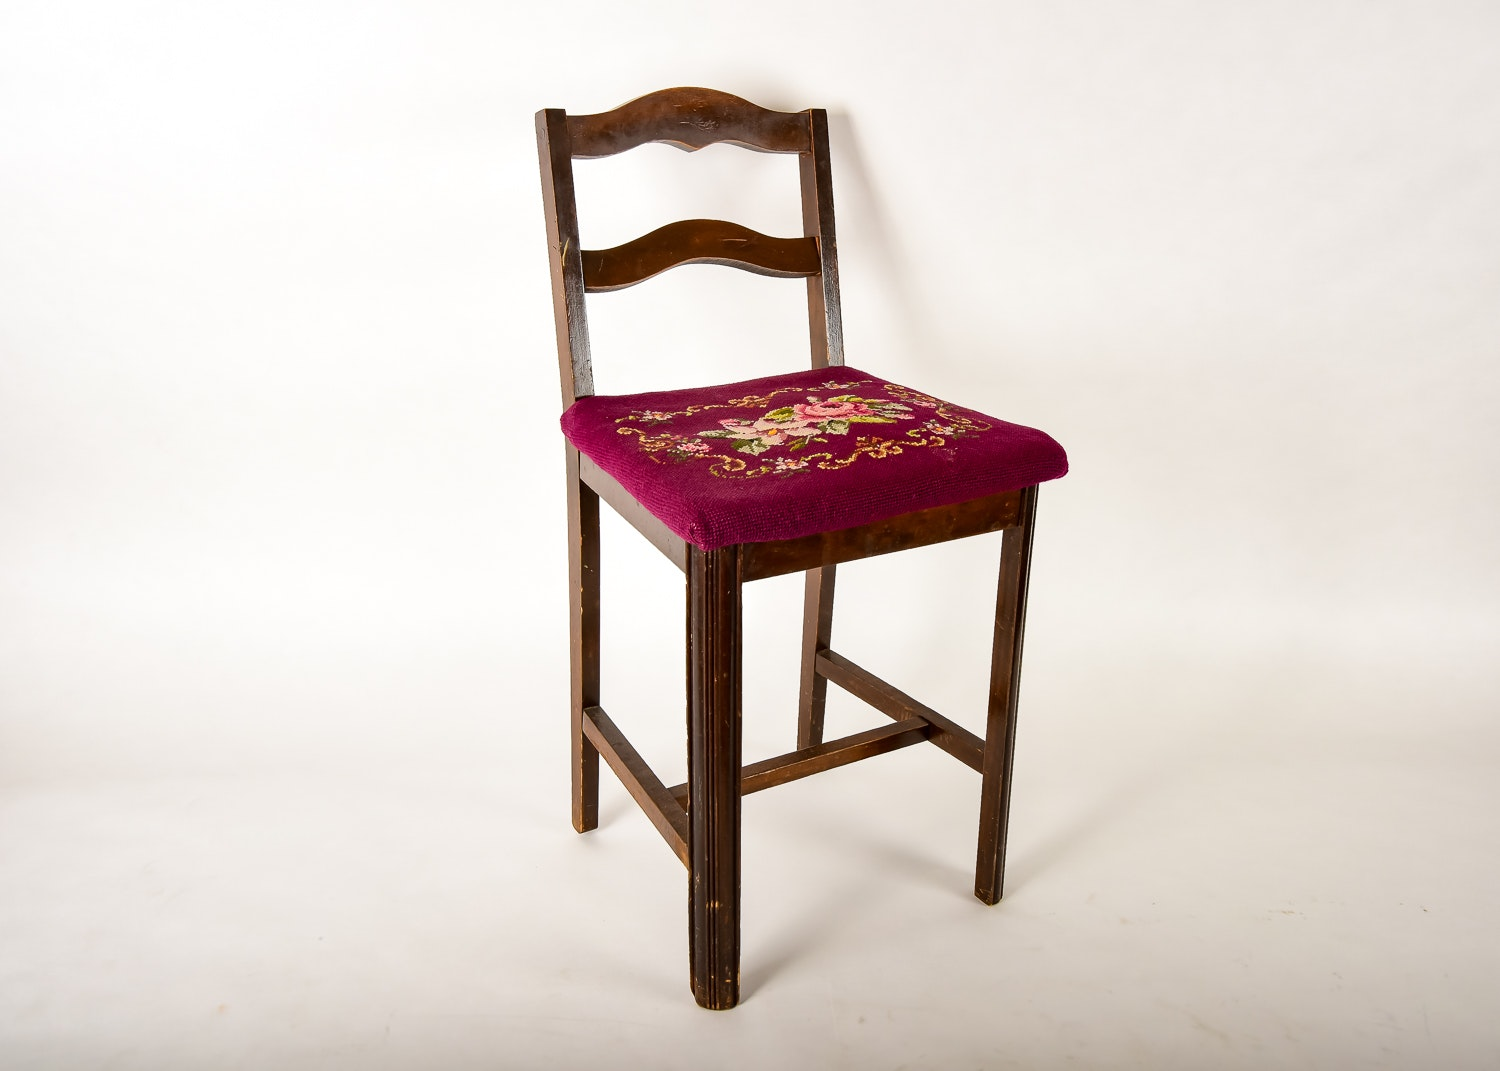 Chair Stool With Needlepoint Seat Ebth